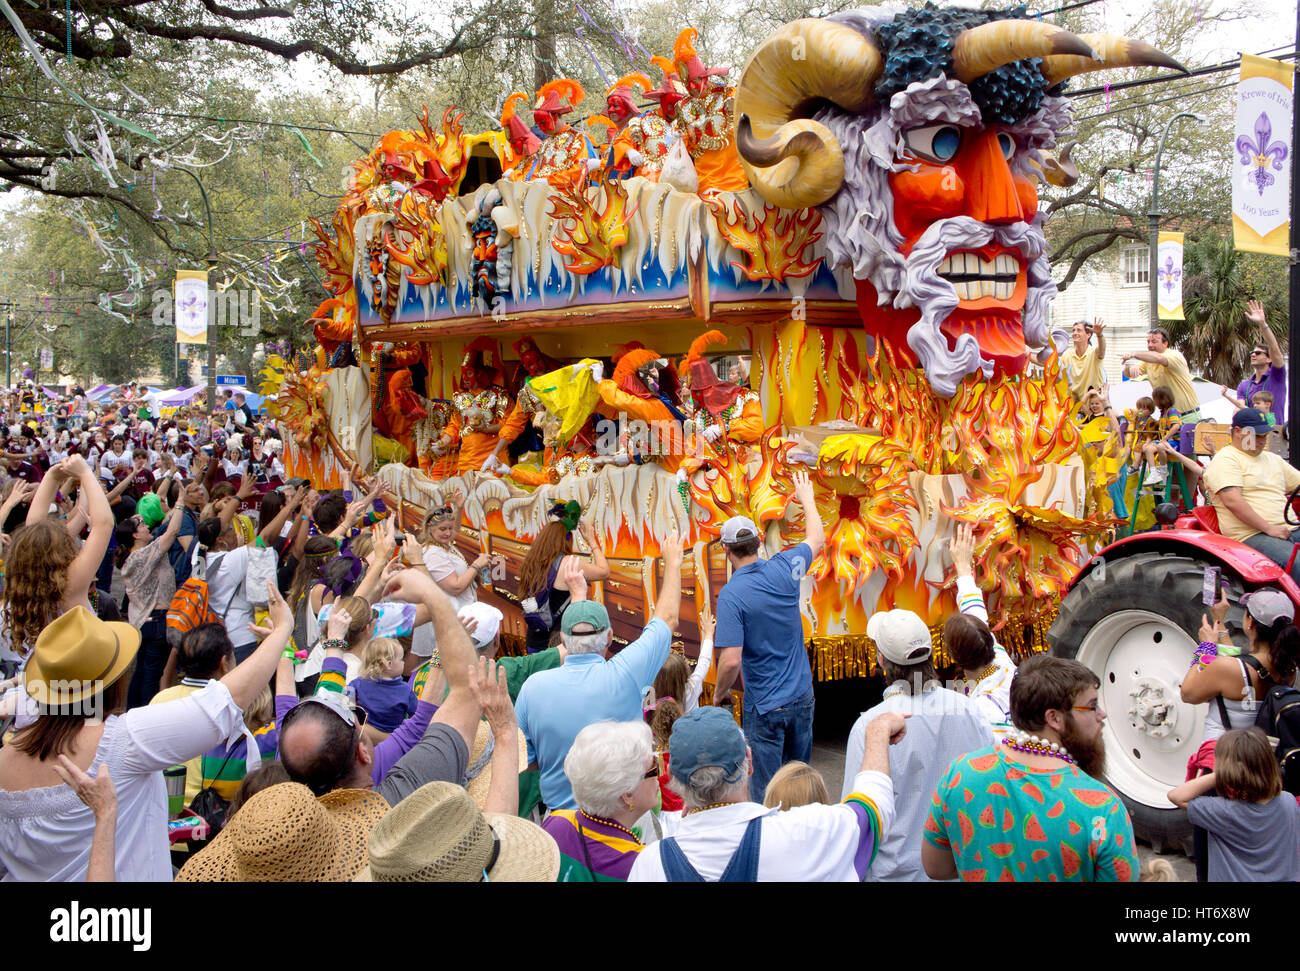 Image result for New Orleans parade crowds